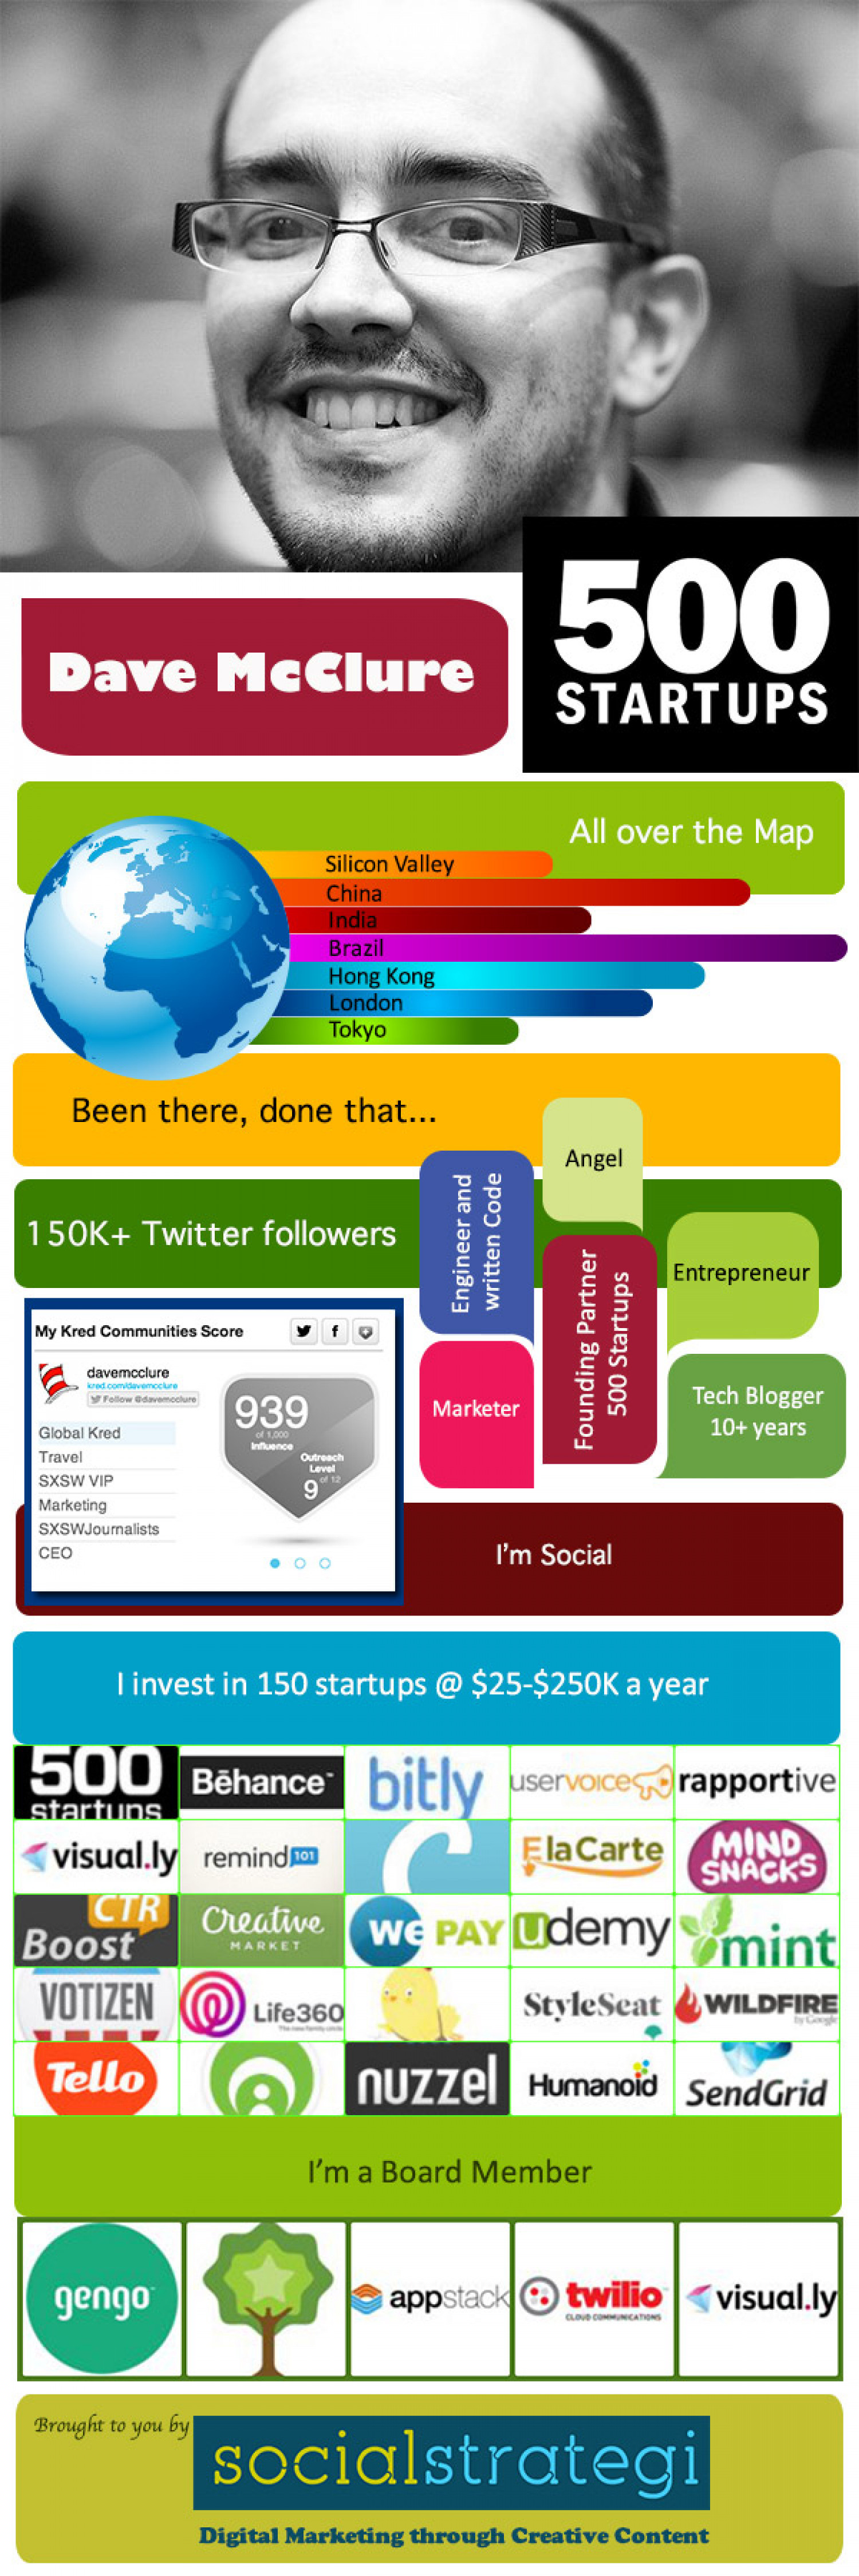 Dave McClure: 500 Startups Infographic